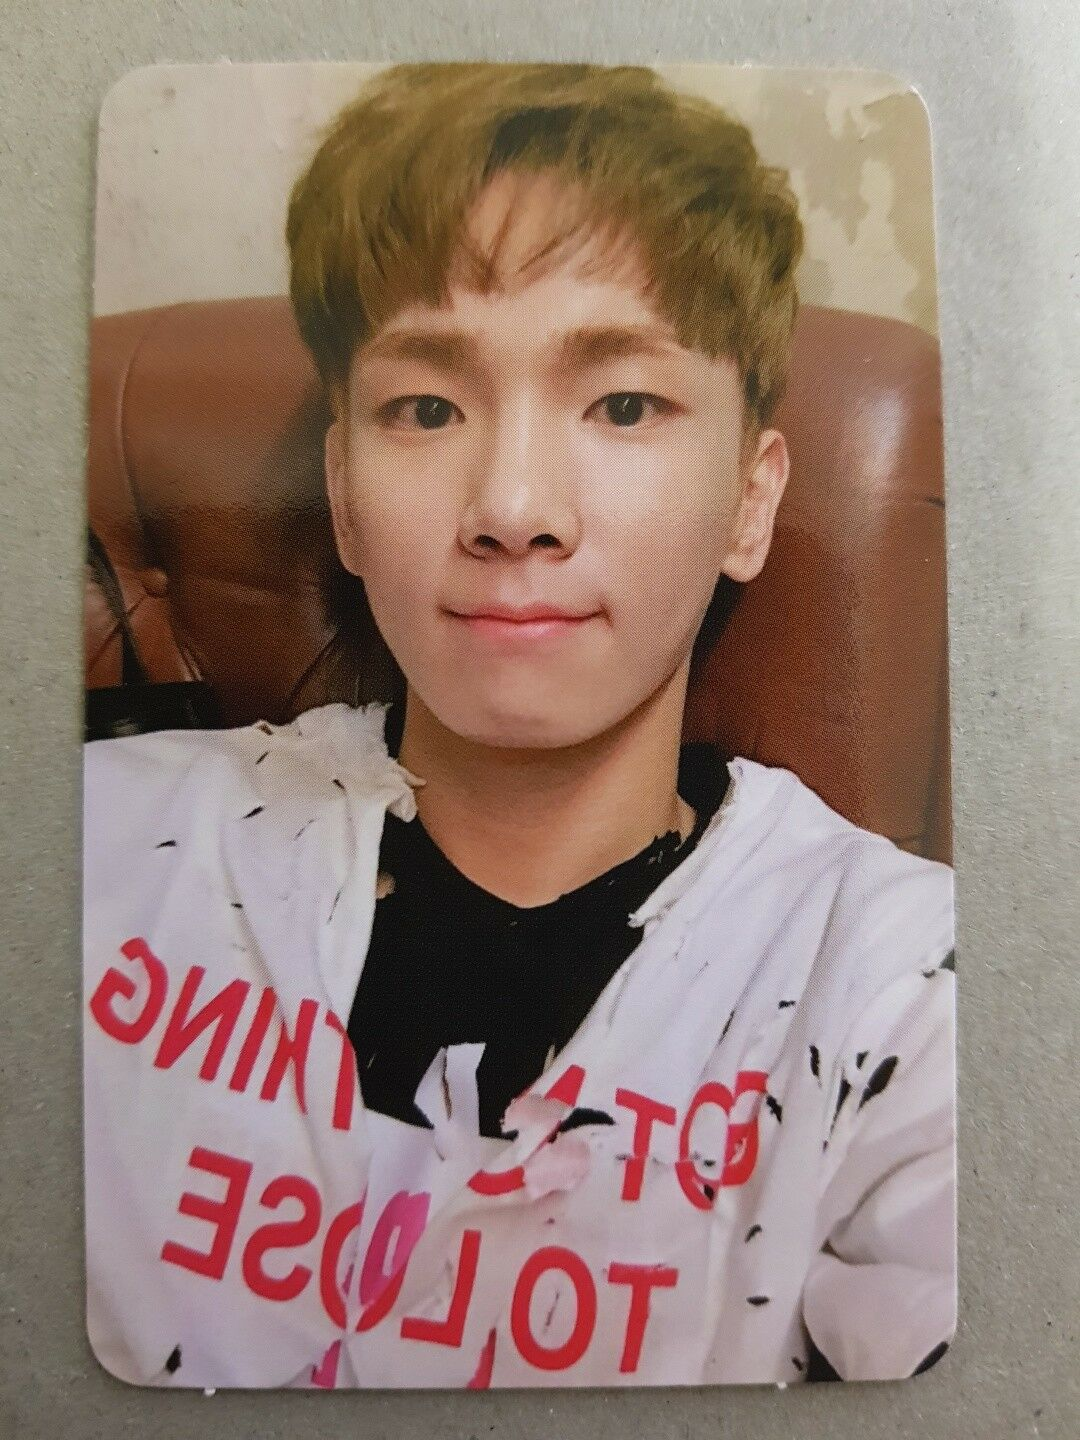 SHINEE KEY Authentic Official PHOTOCARD #1 1 and 1 5th